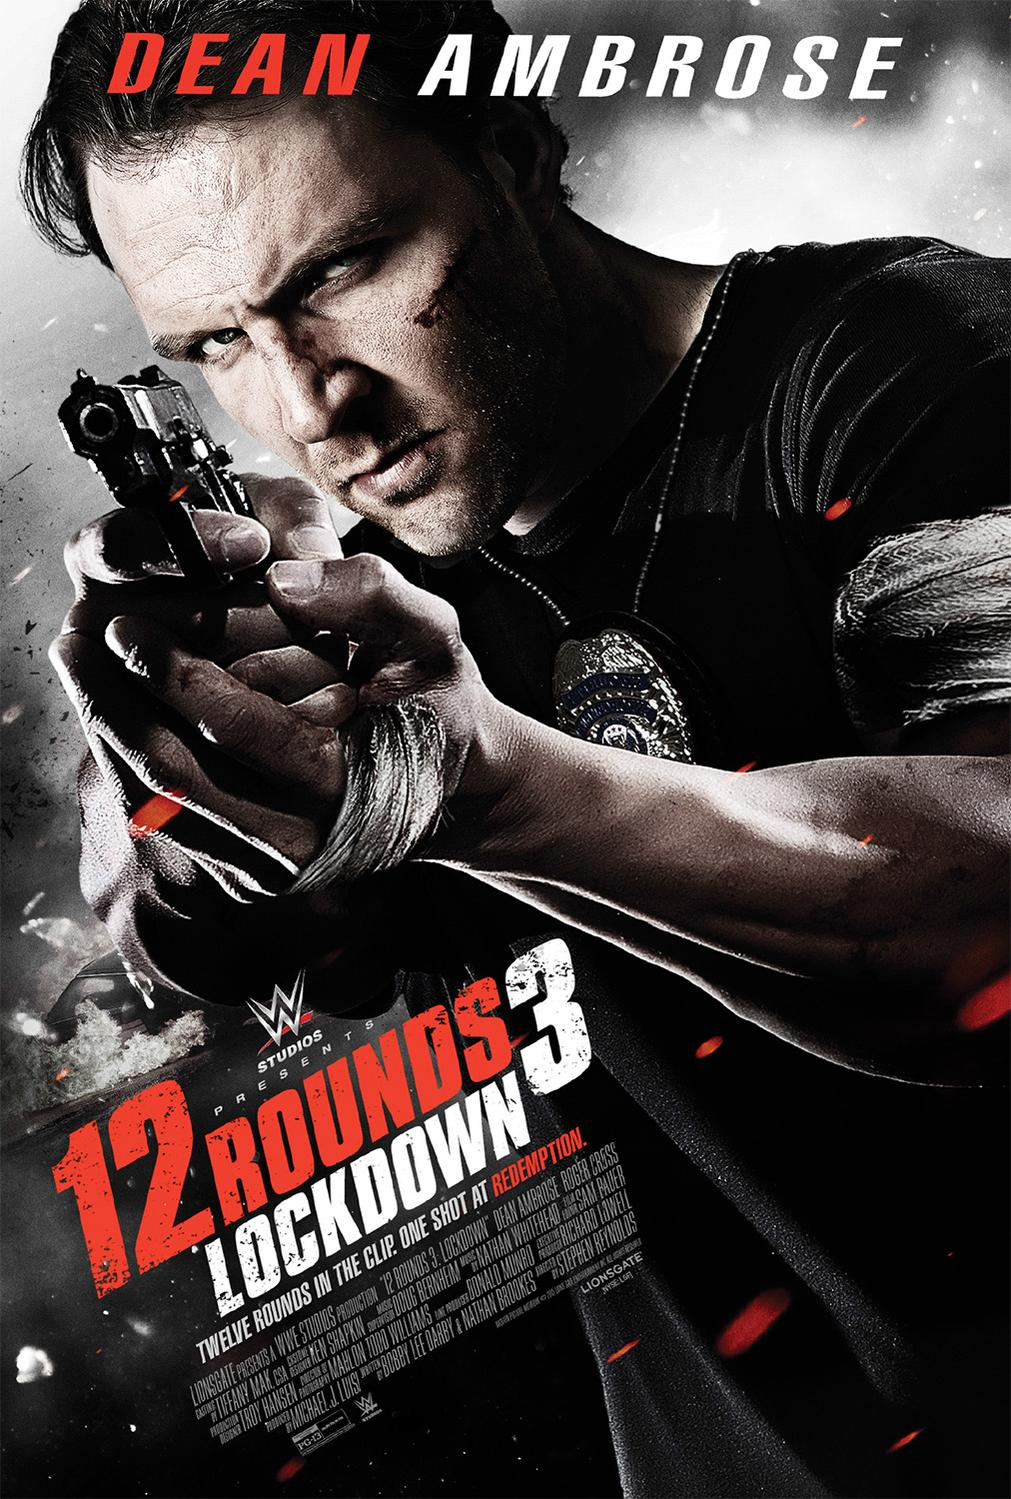 12 Rounds 3 Lockdown [2015 USA Movie Action, Crime, Thriller]